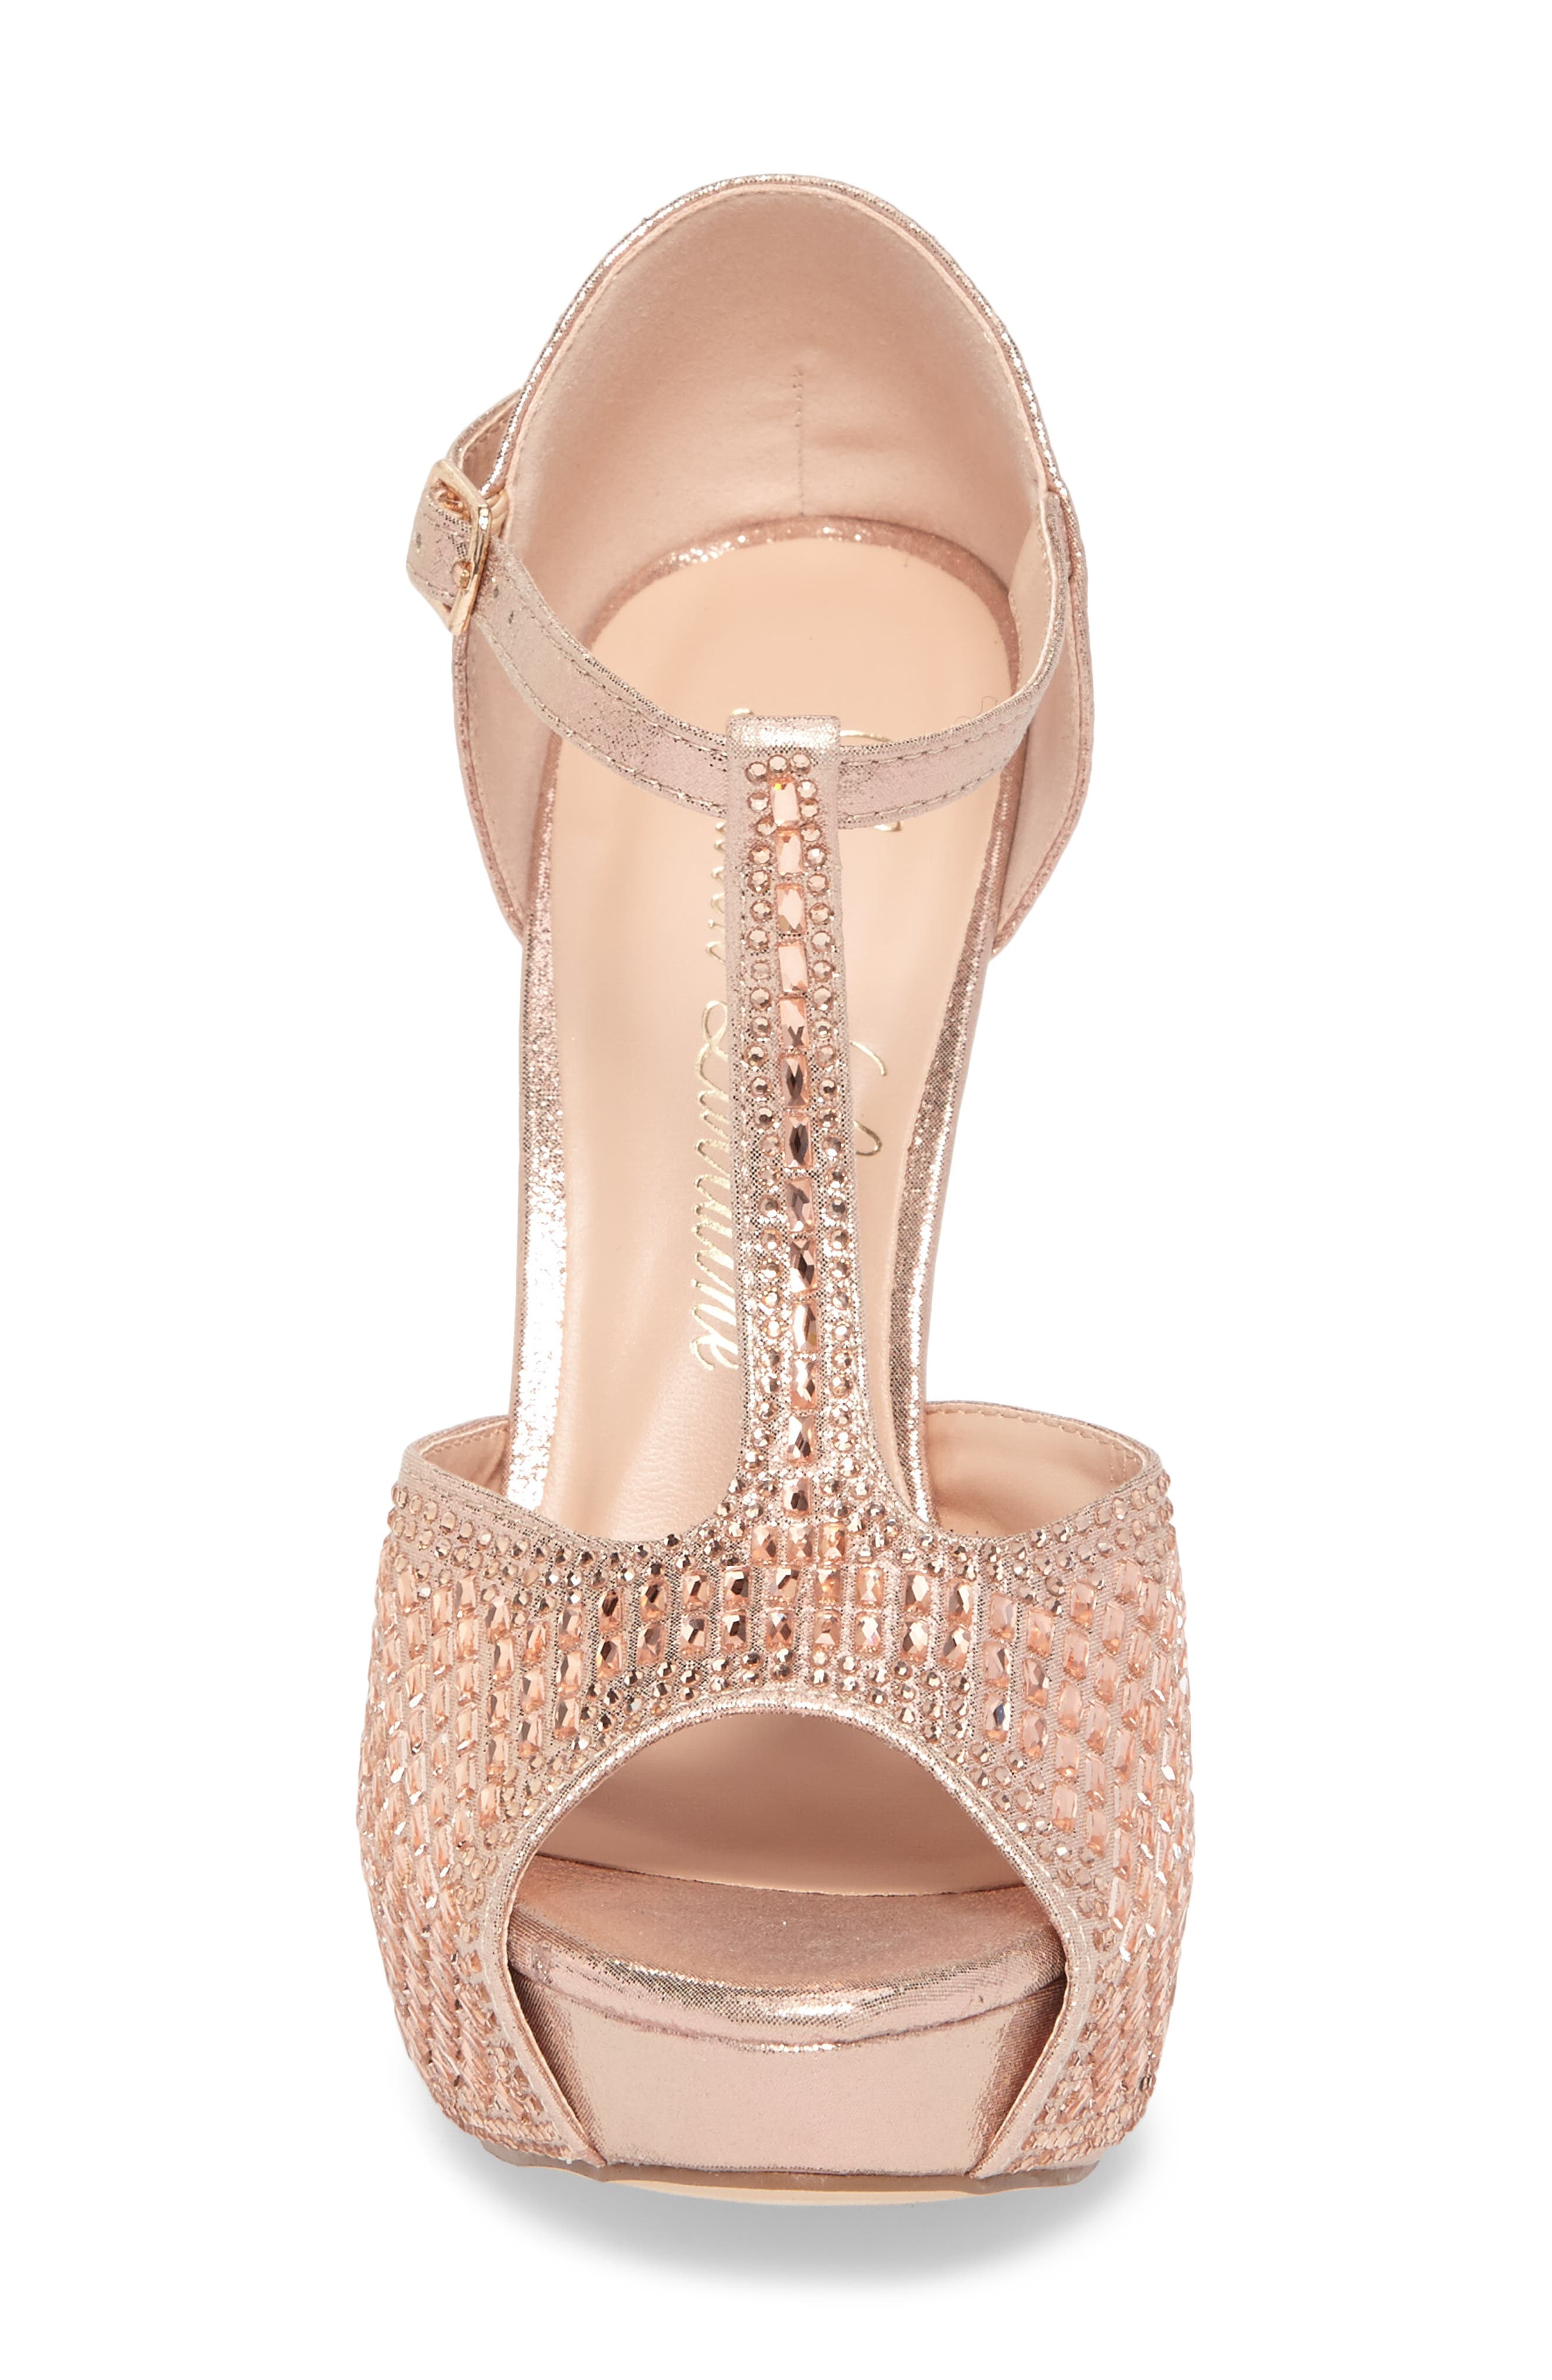 Vivian 4 Crystal Embellished Sandal,                             Alternate thumbnail 12, color,